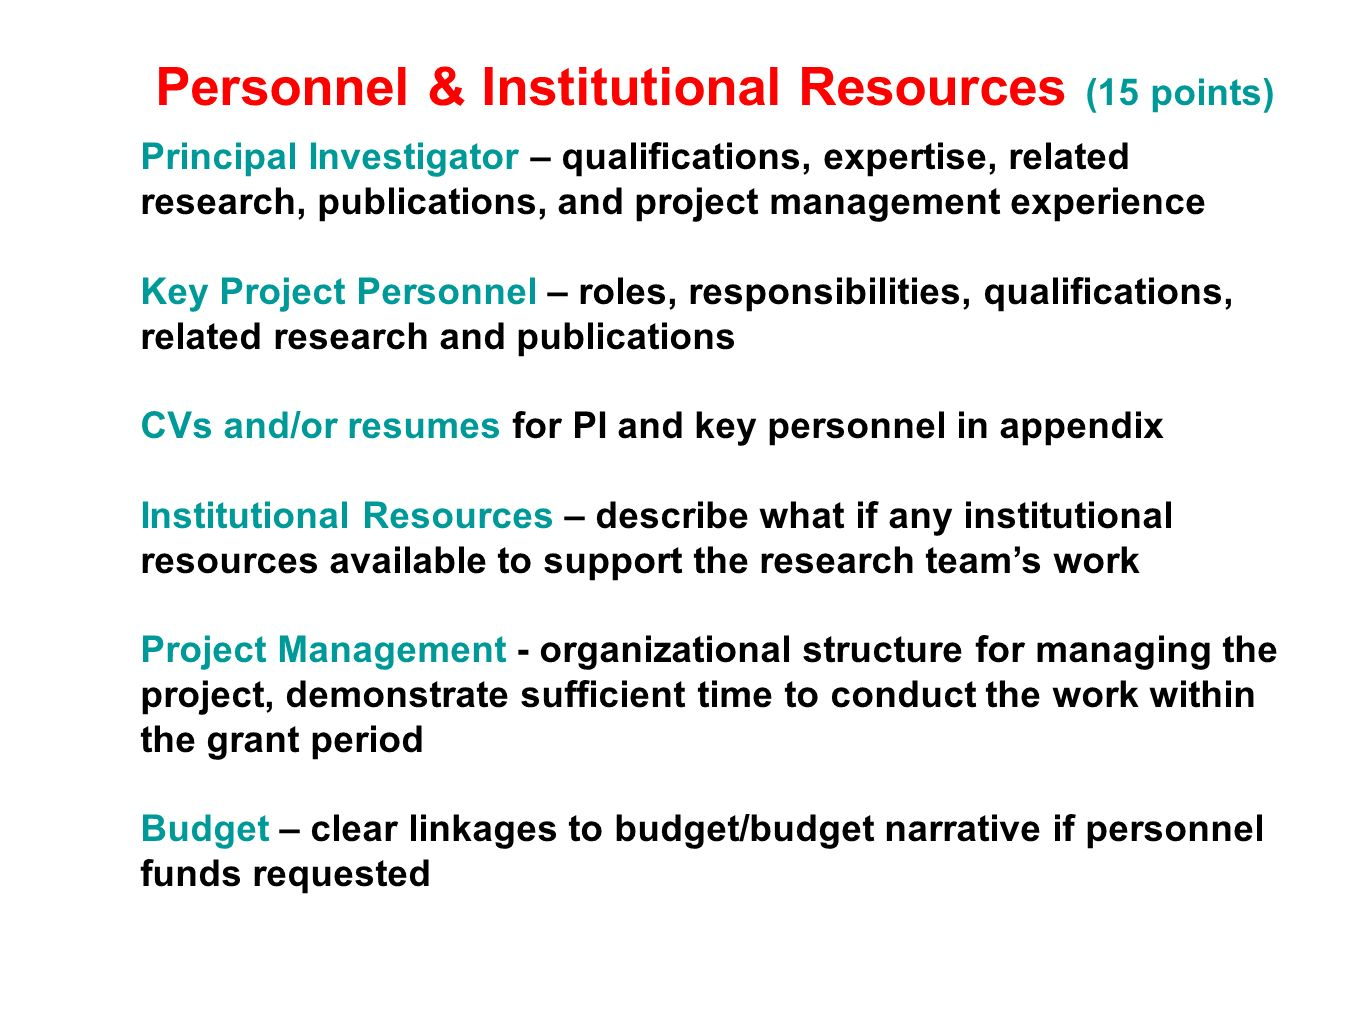 Personnel & Institutional Resources (15 points) Principal Investigator – qualifications, expertise, related research, publications, and project management experience Key Project Personnel – roles, responsibilities, qualifications, related research and publications CVs and/or resumes for PI and key personnel in appendix Institutional Resources – describe what if any institutional resources available to support the research teams work Project Management - organizational structure for managing the project, demonstrate sufficient time to conduct the work within the grant period Budget – clear linkages to budget/budget narrative if personnel funds requested